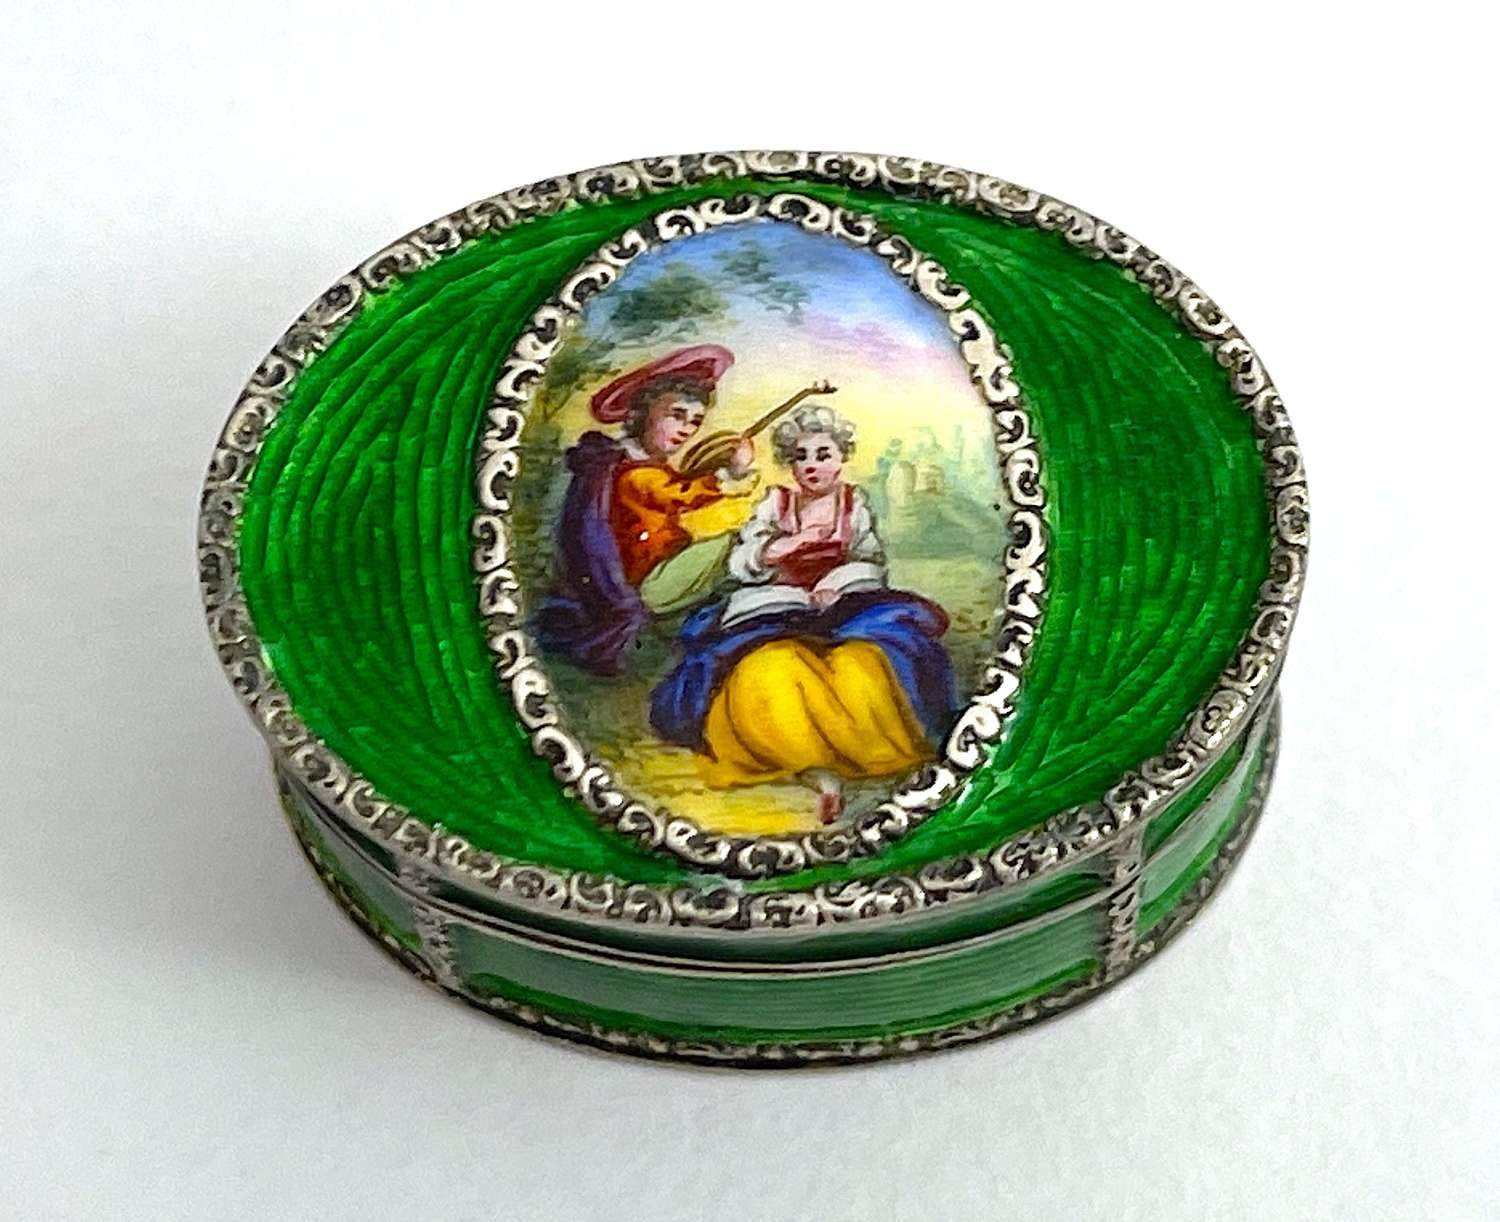 Antique French Guilloche Enamel and Silver Pill Box with Miniature